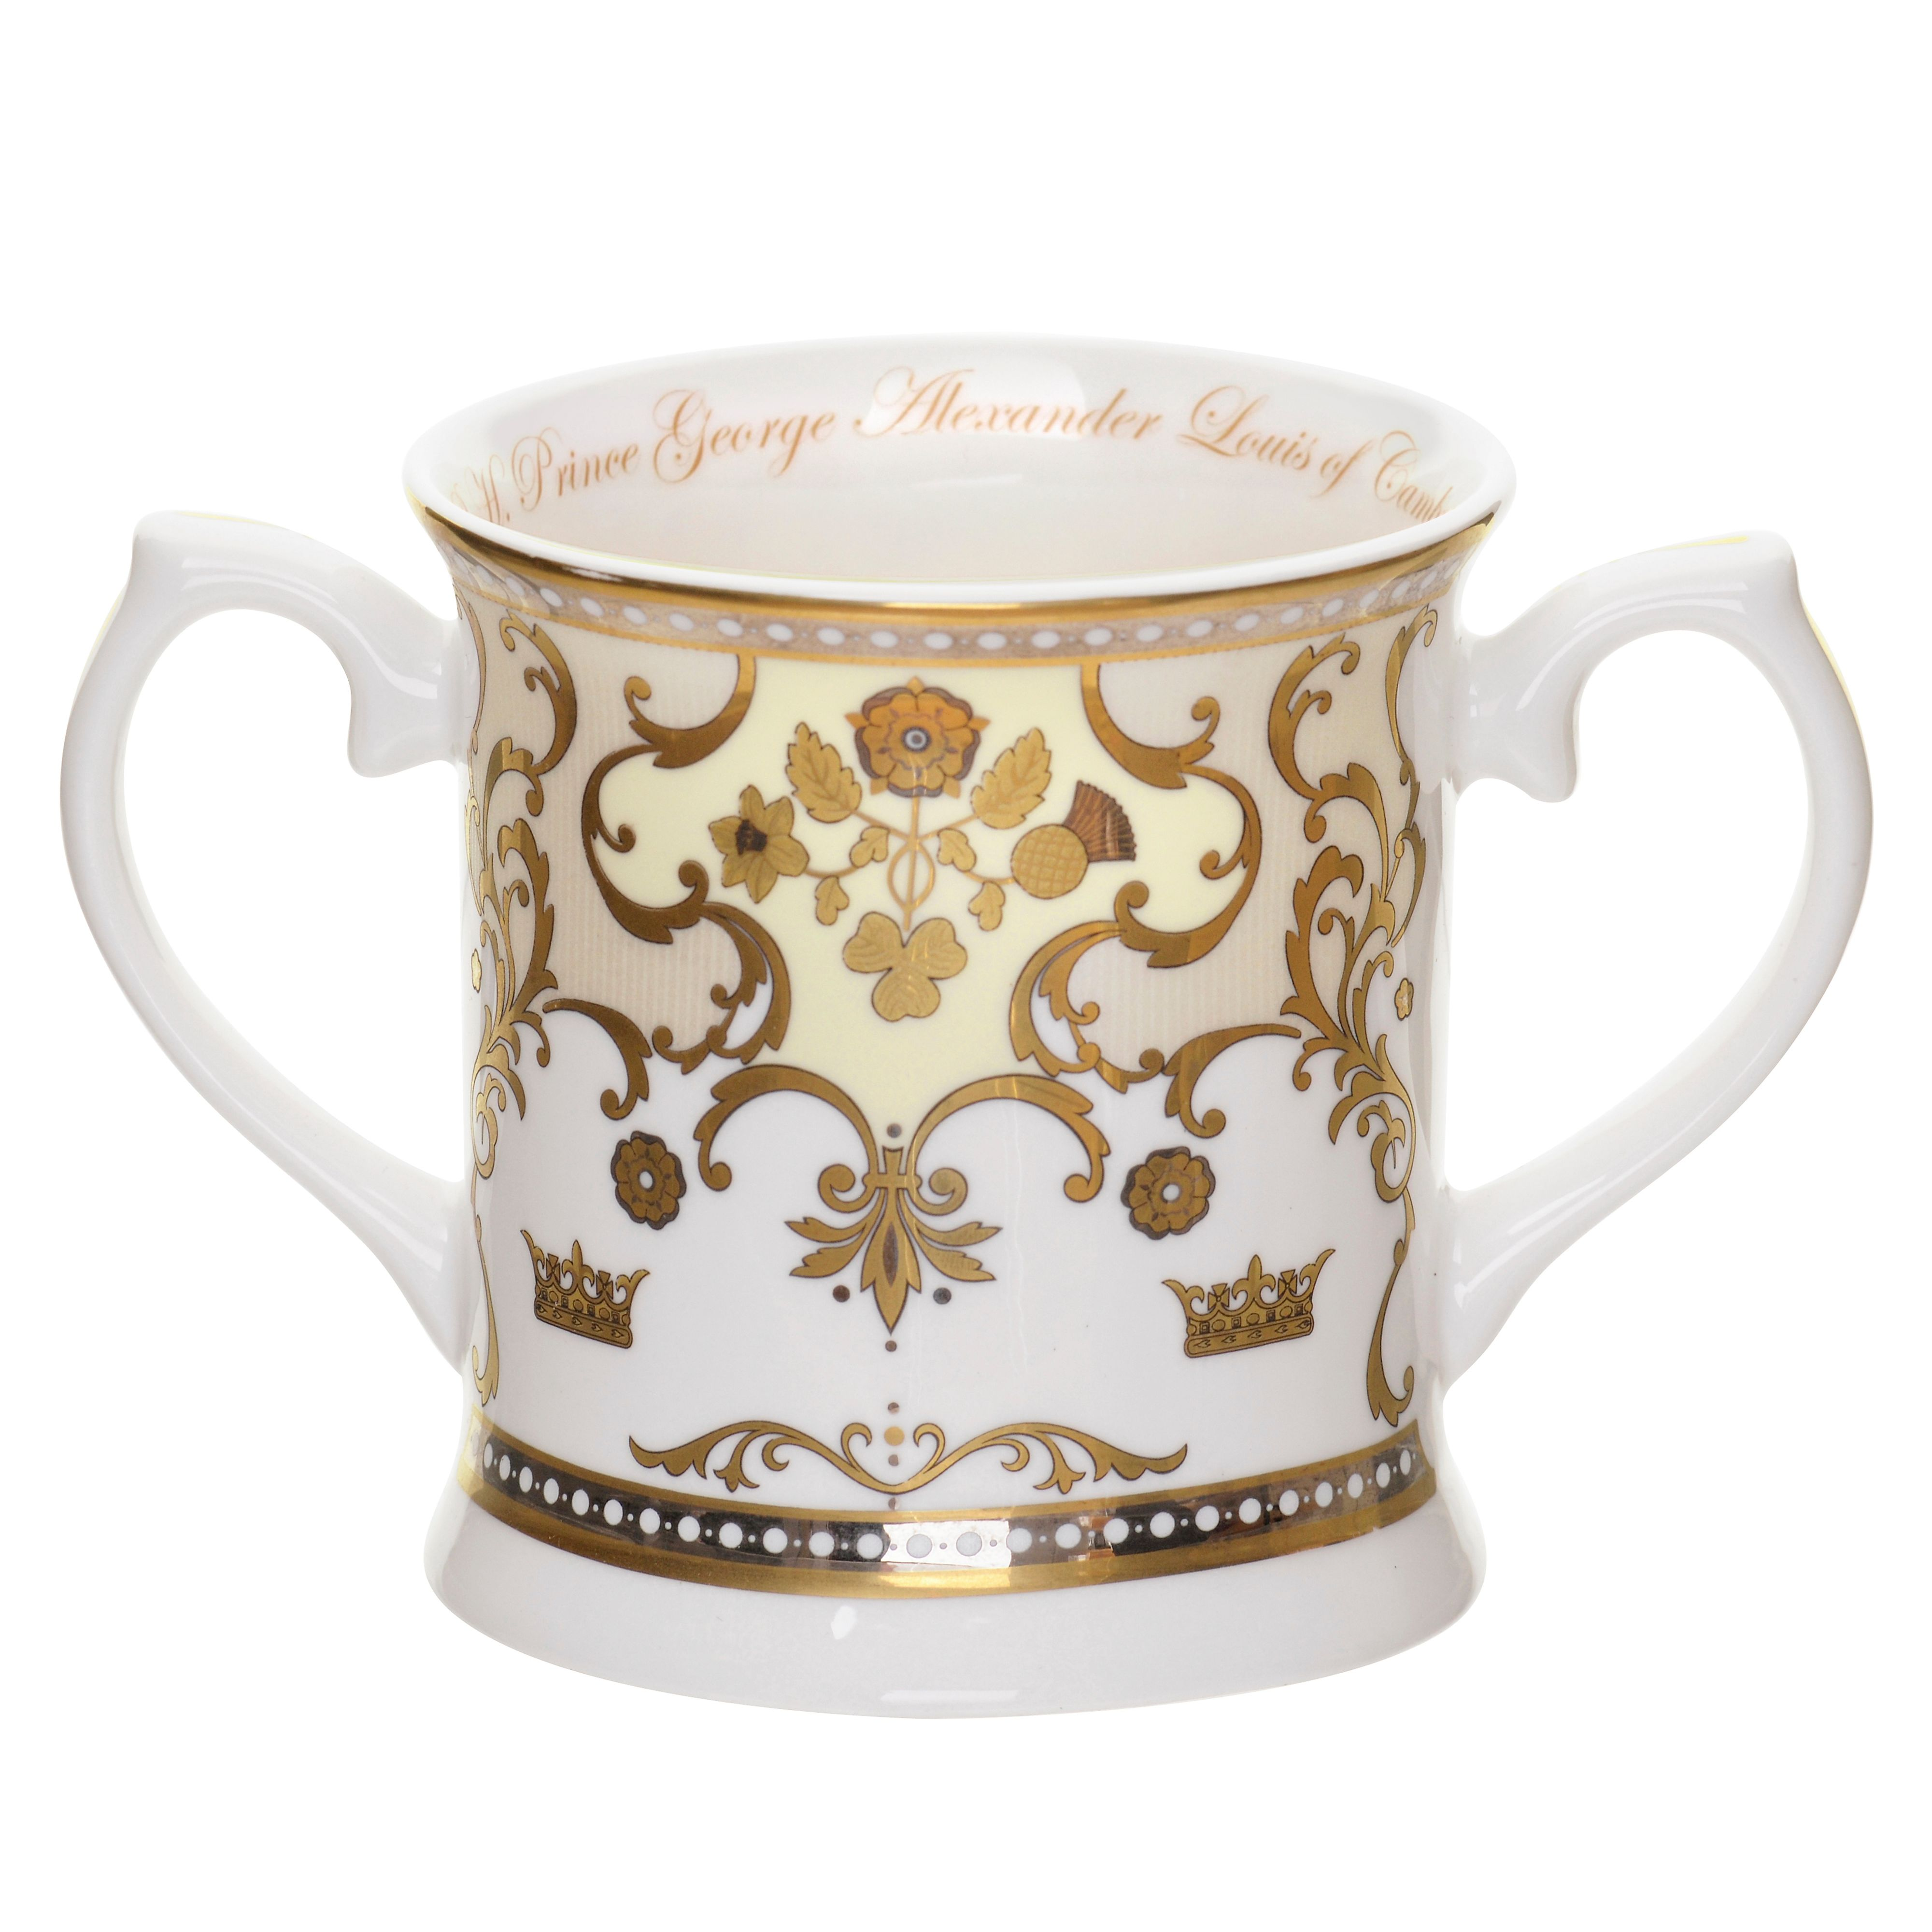 Royal baby tankard